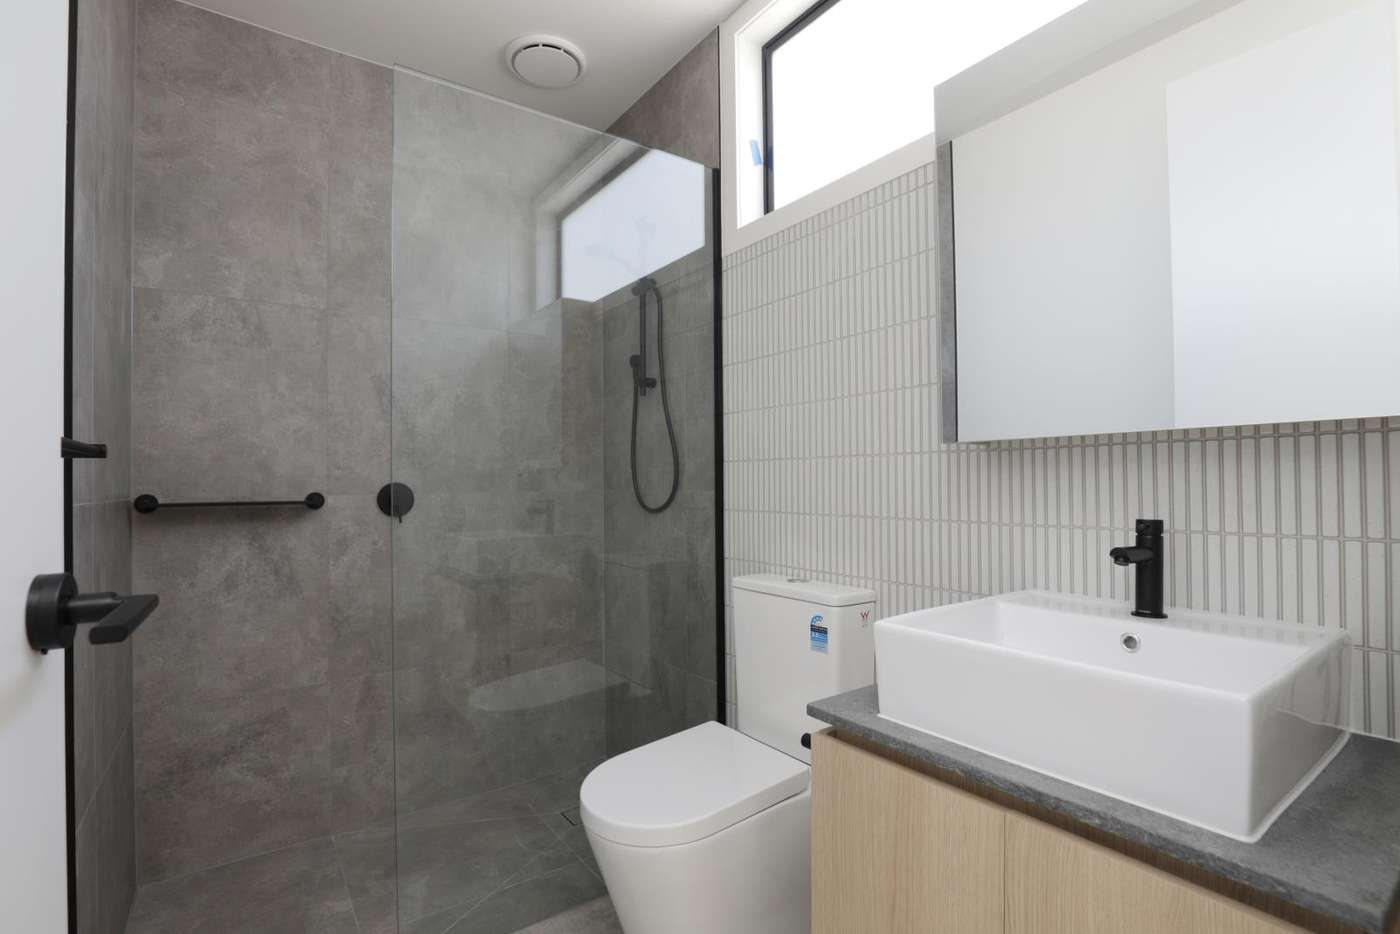 Fifth view of Homely townhouse listing, 19/711 Barkly Street, West Footscray VIC 3012